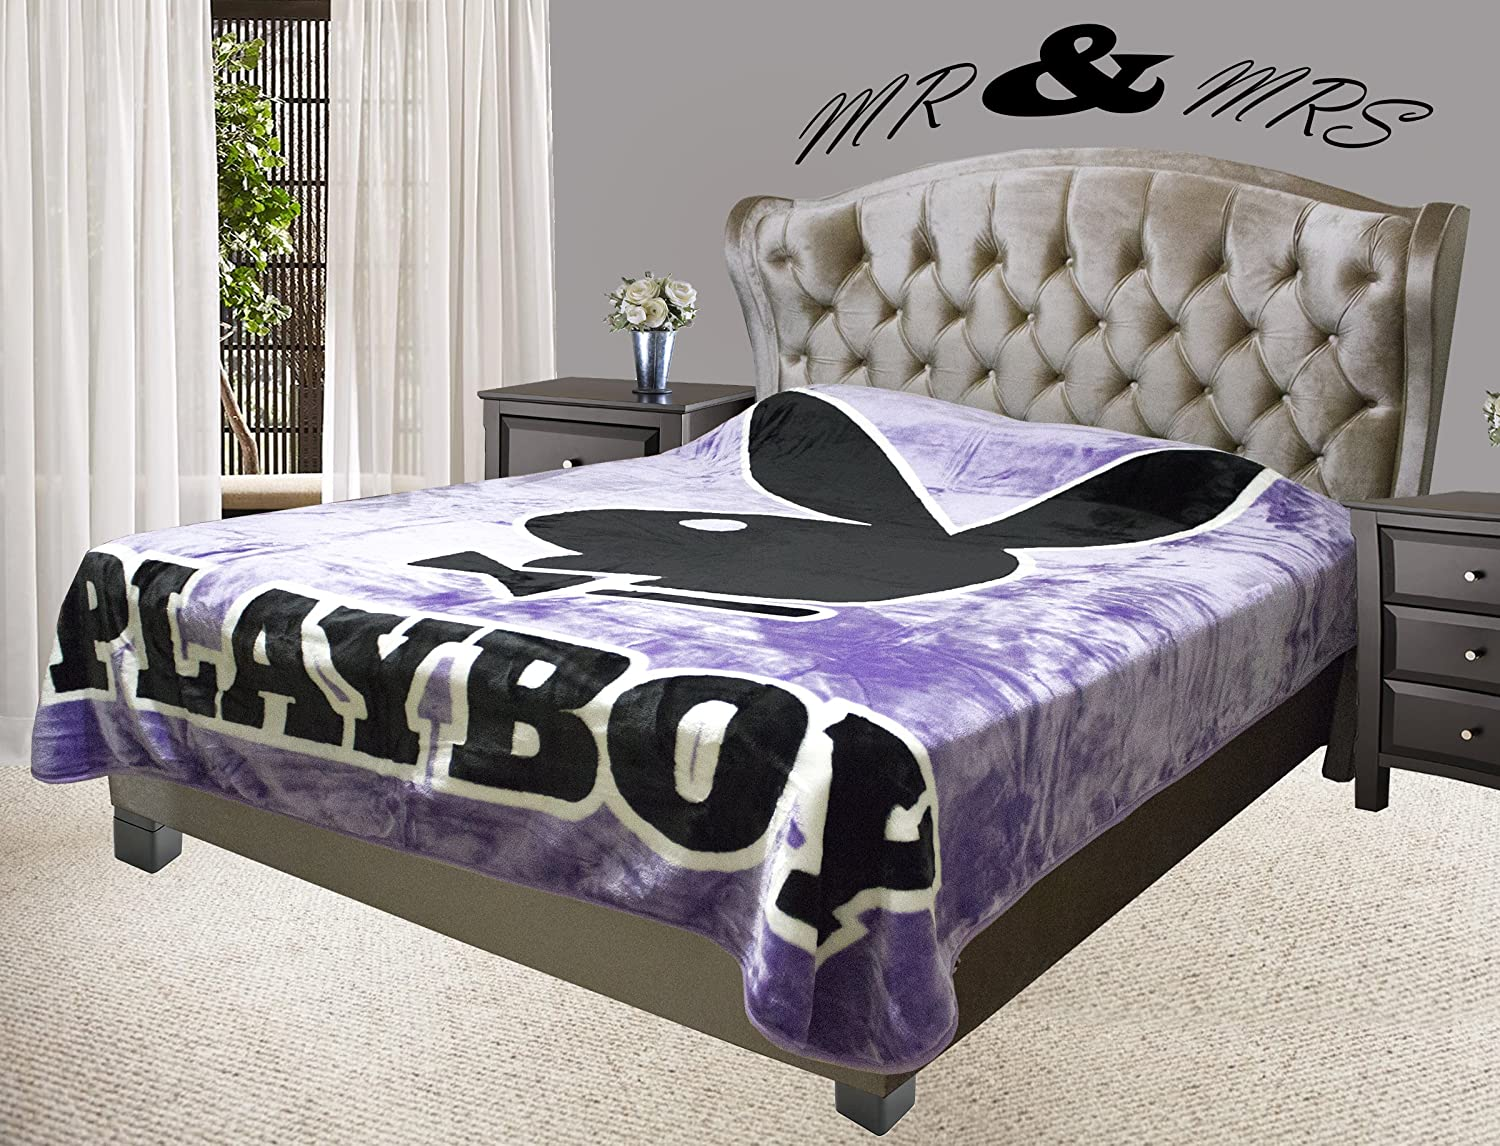 Playboy Bunny with Tuxedo, Solid Purple